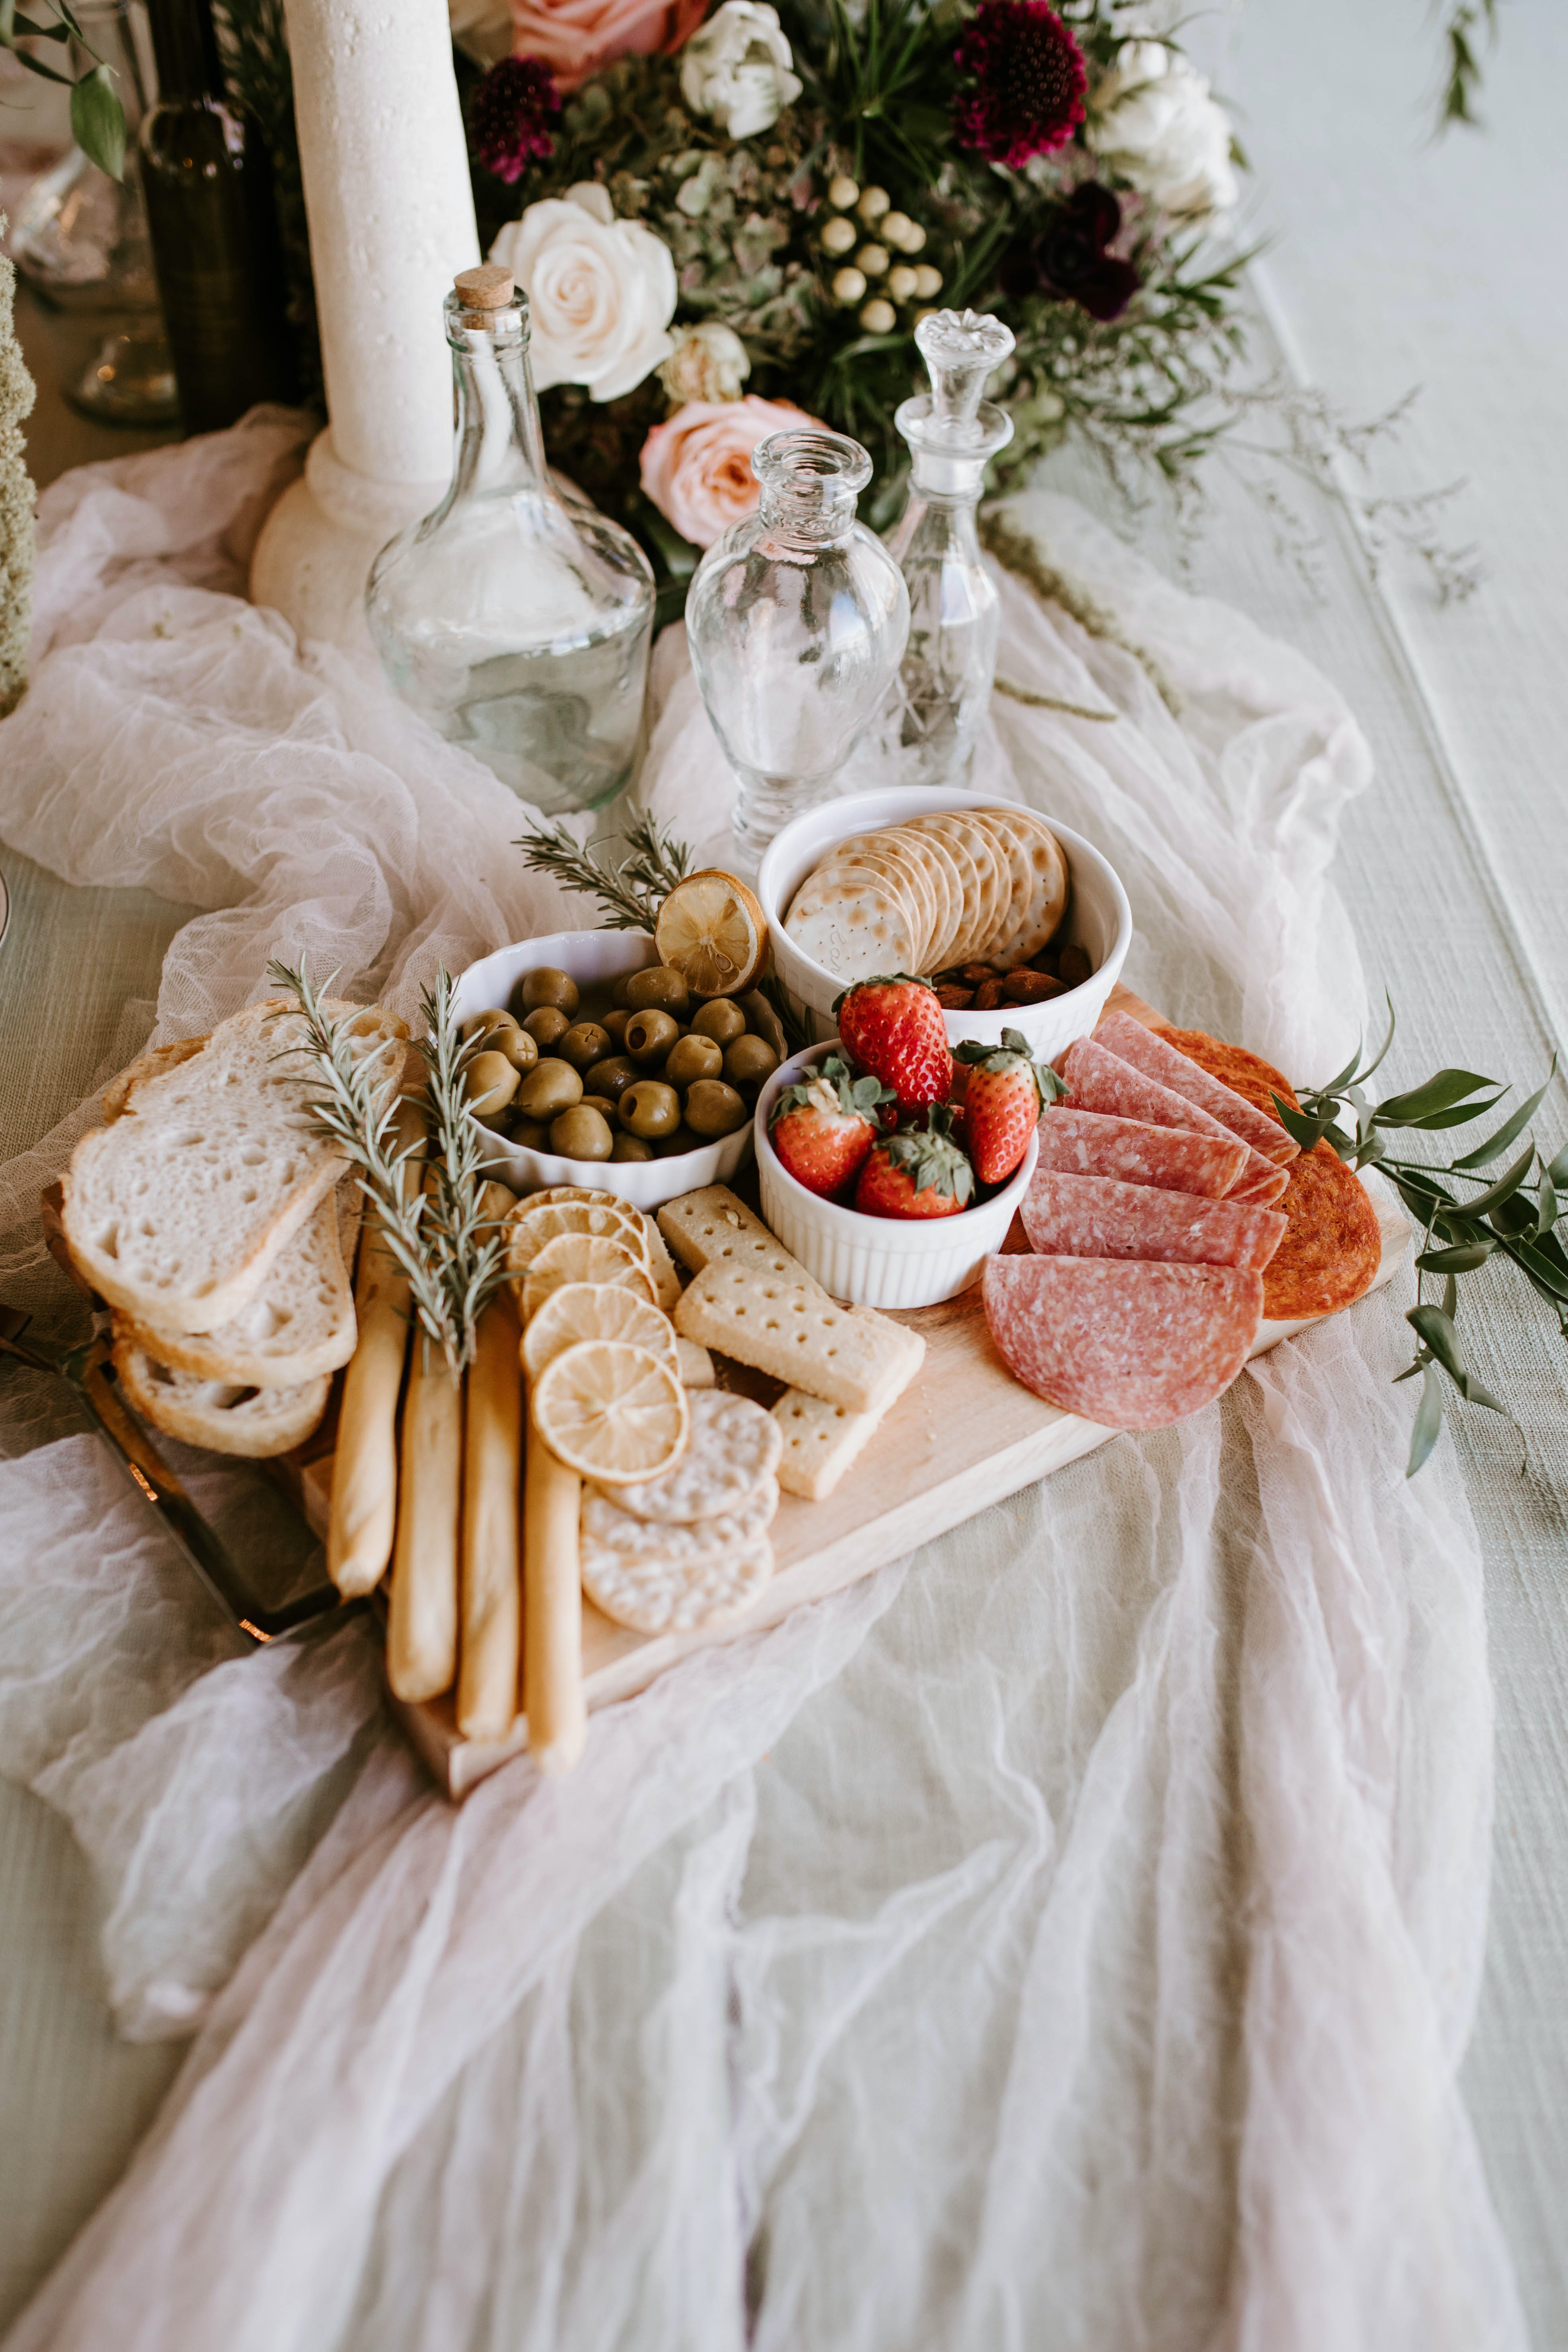 A platter of crackers, meats, cheeses, breads, fruits, nuts and meats.